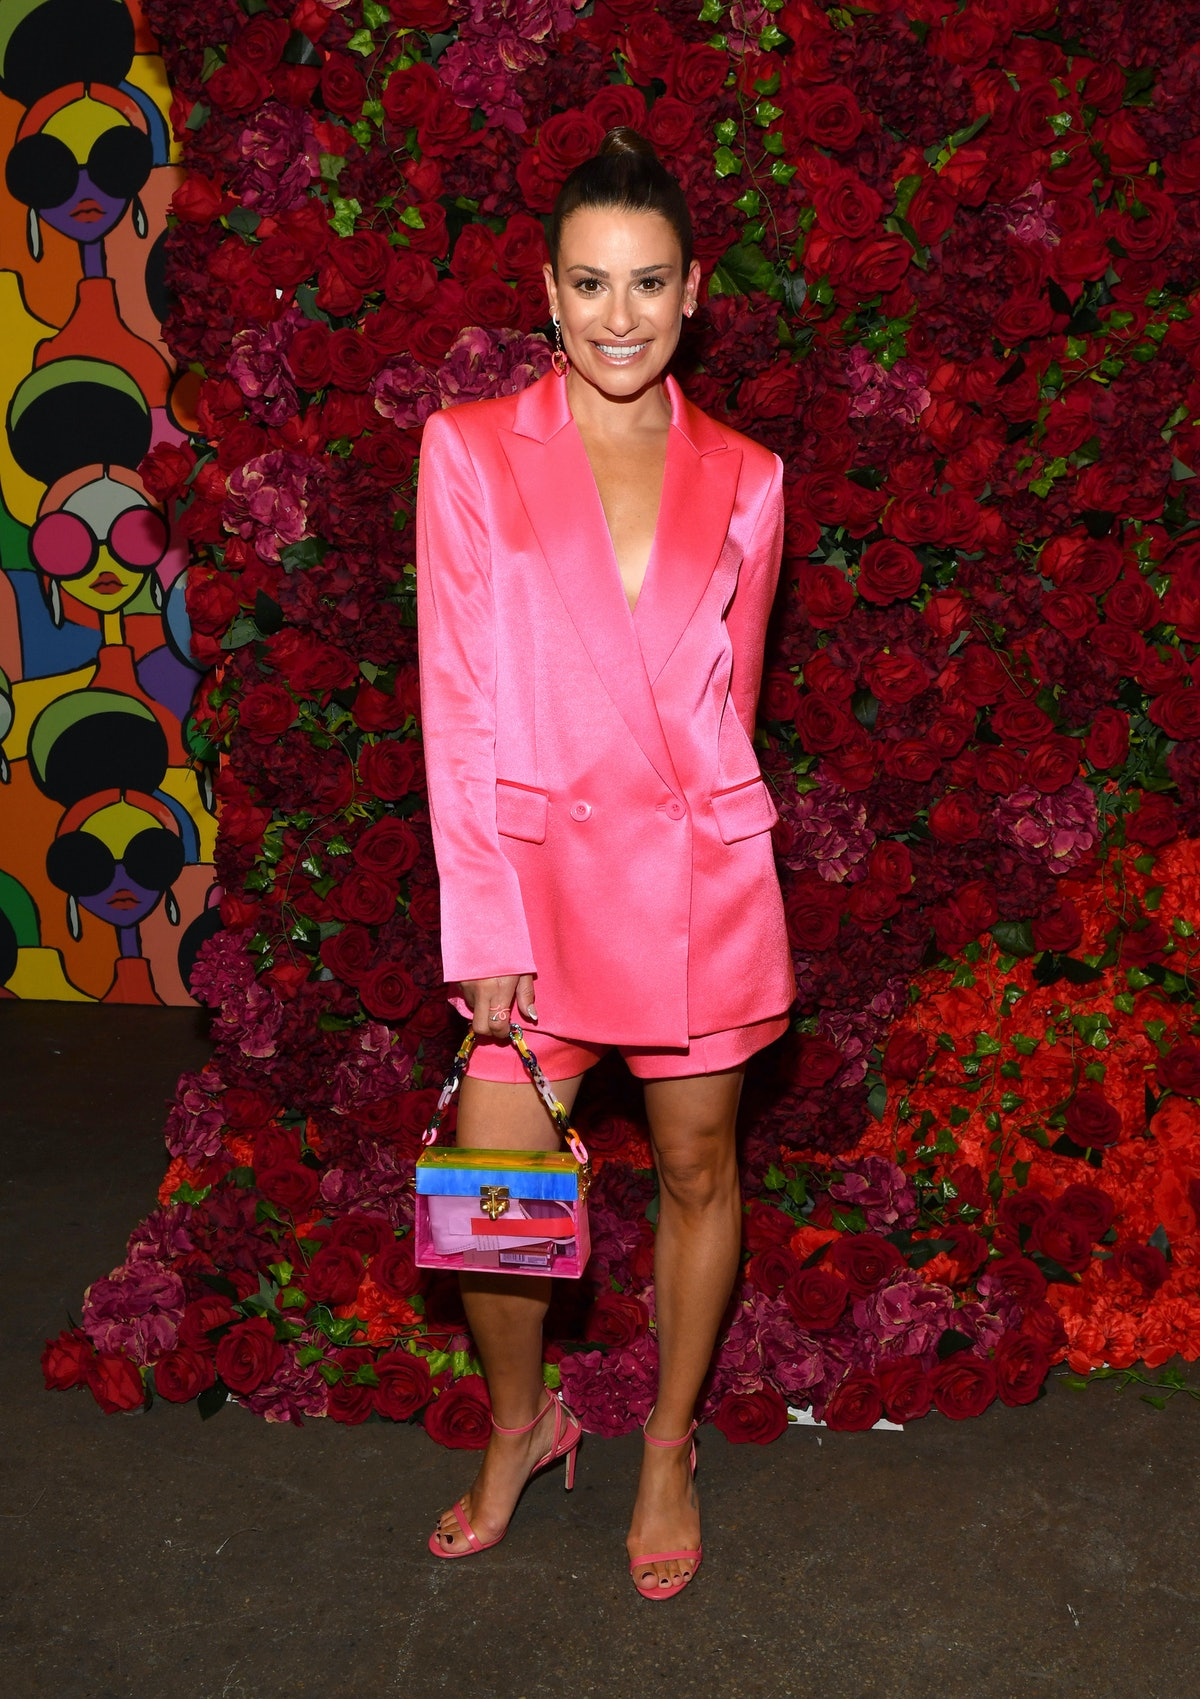 Lea Michele poses for a photo during TRESemme x Alice + Olivia during New York Fashion Week at High...